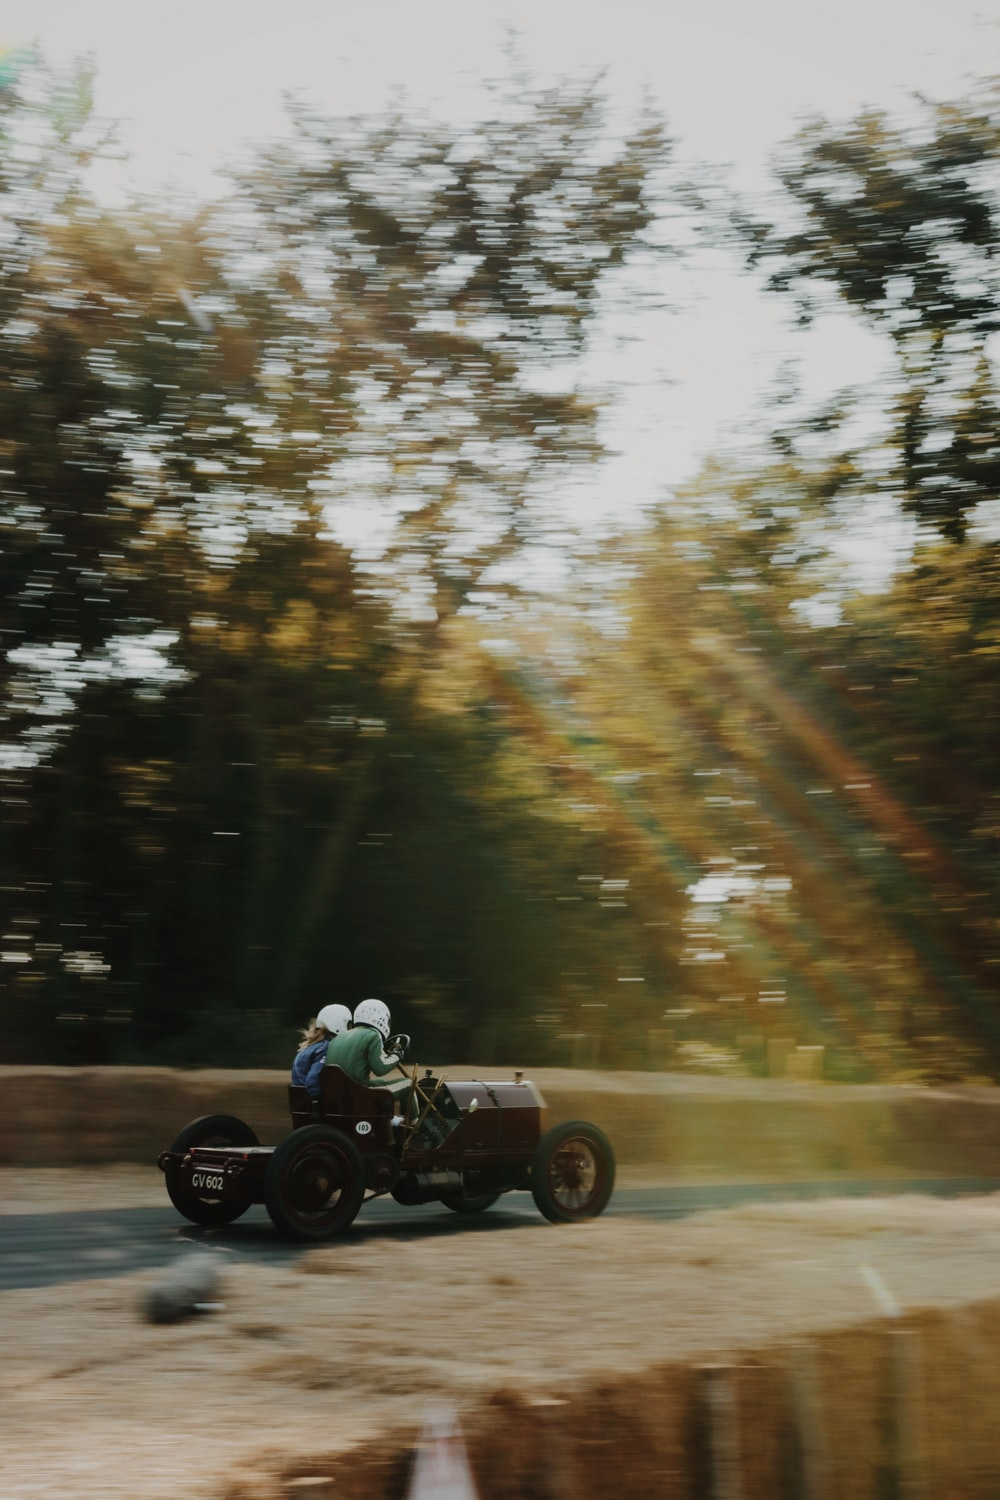 two person riding kart on roadway